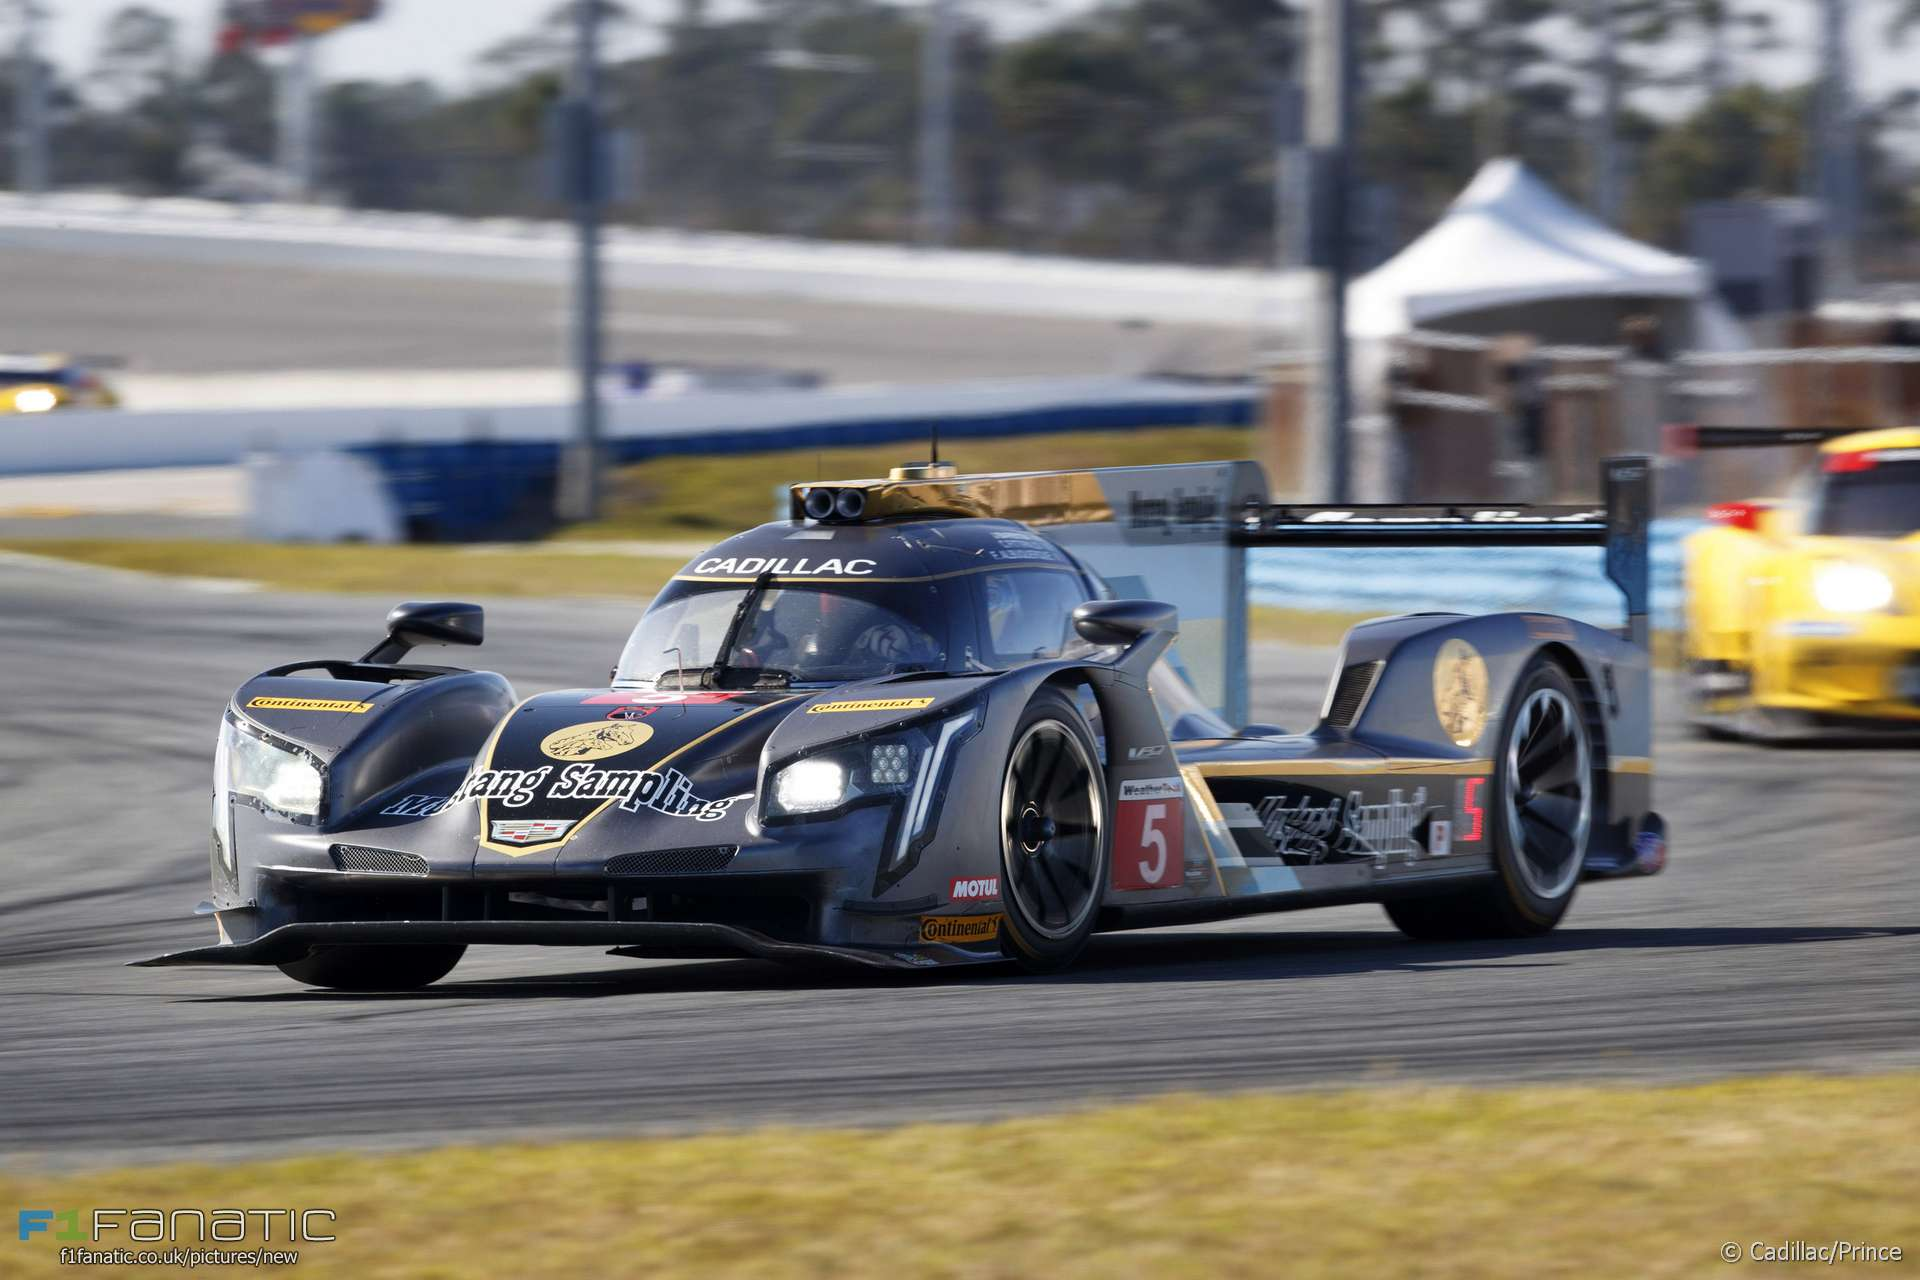 New distance record in Daytona 24 Hours but no joy for F1 pair